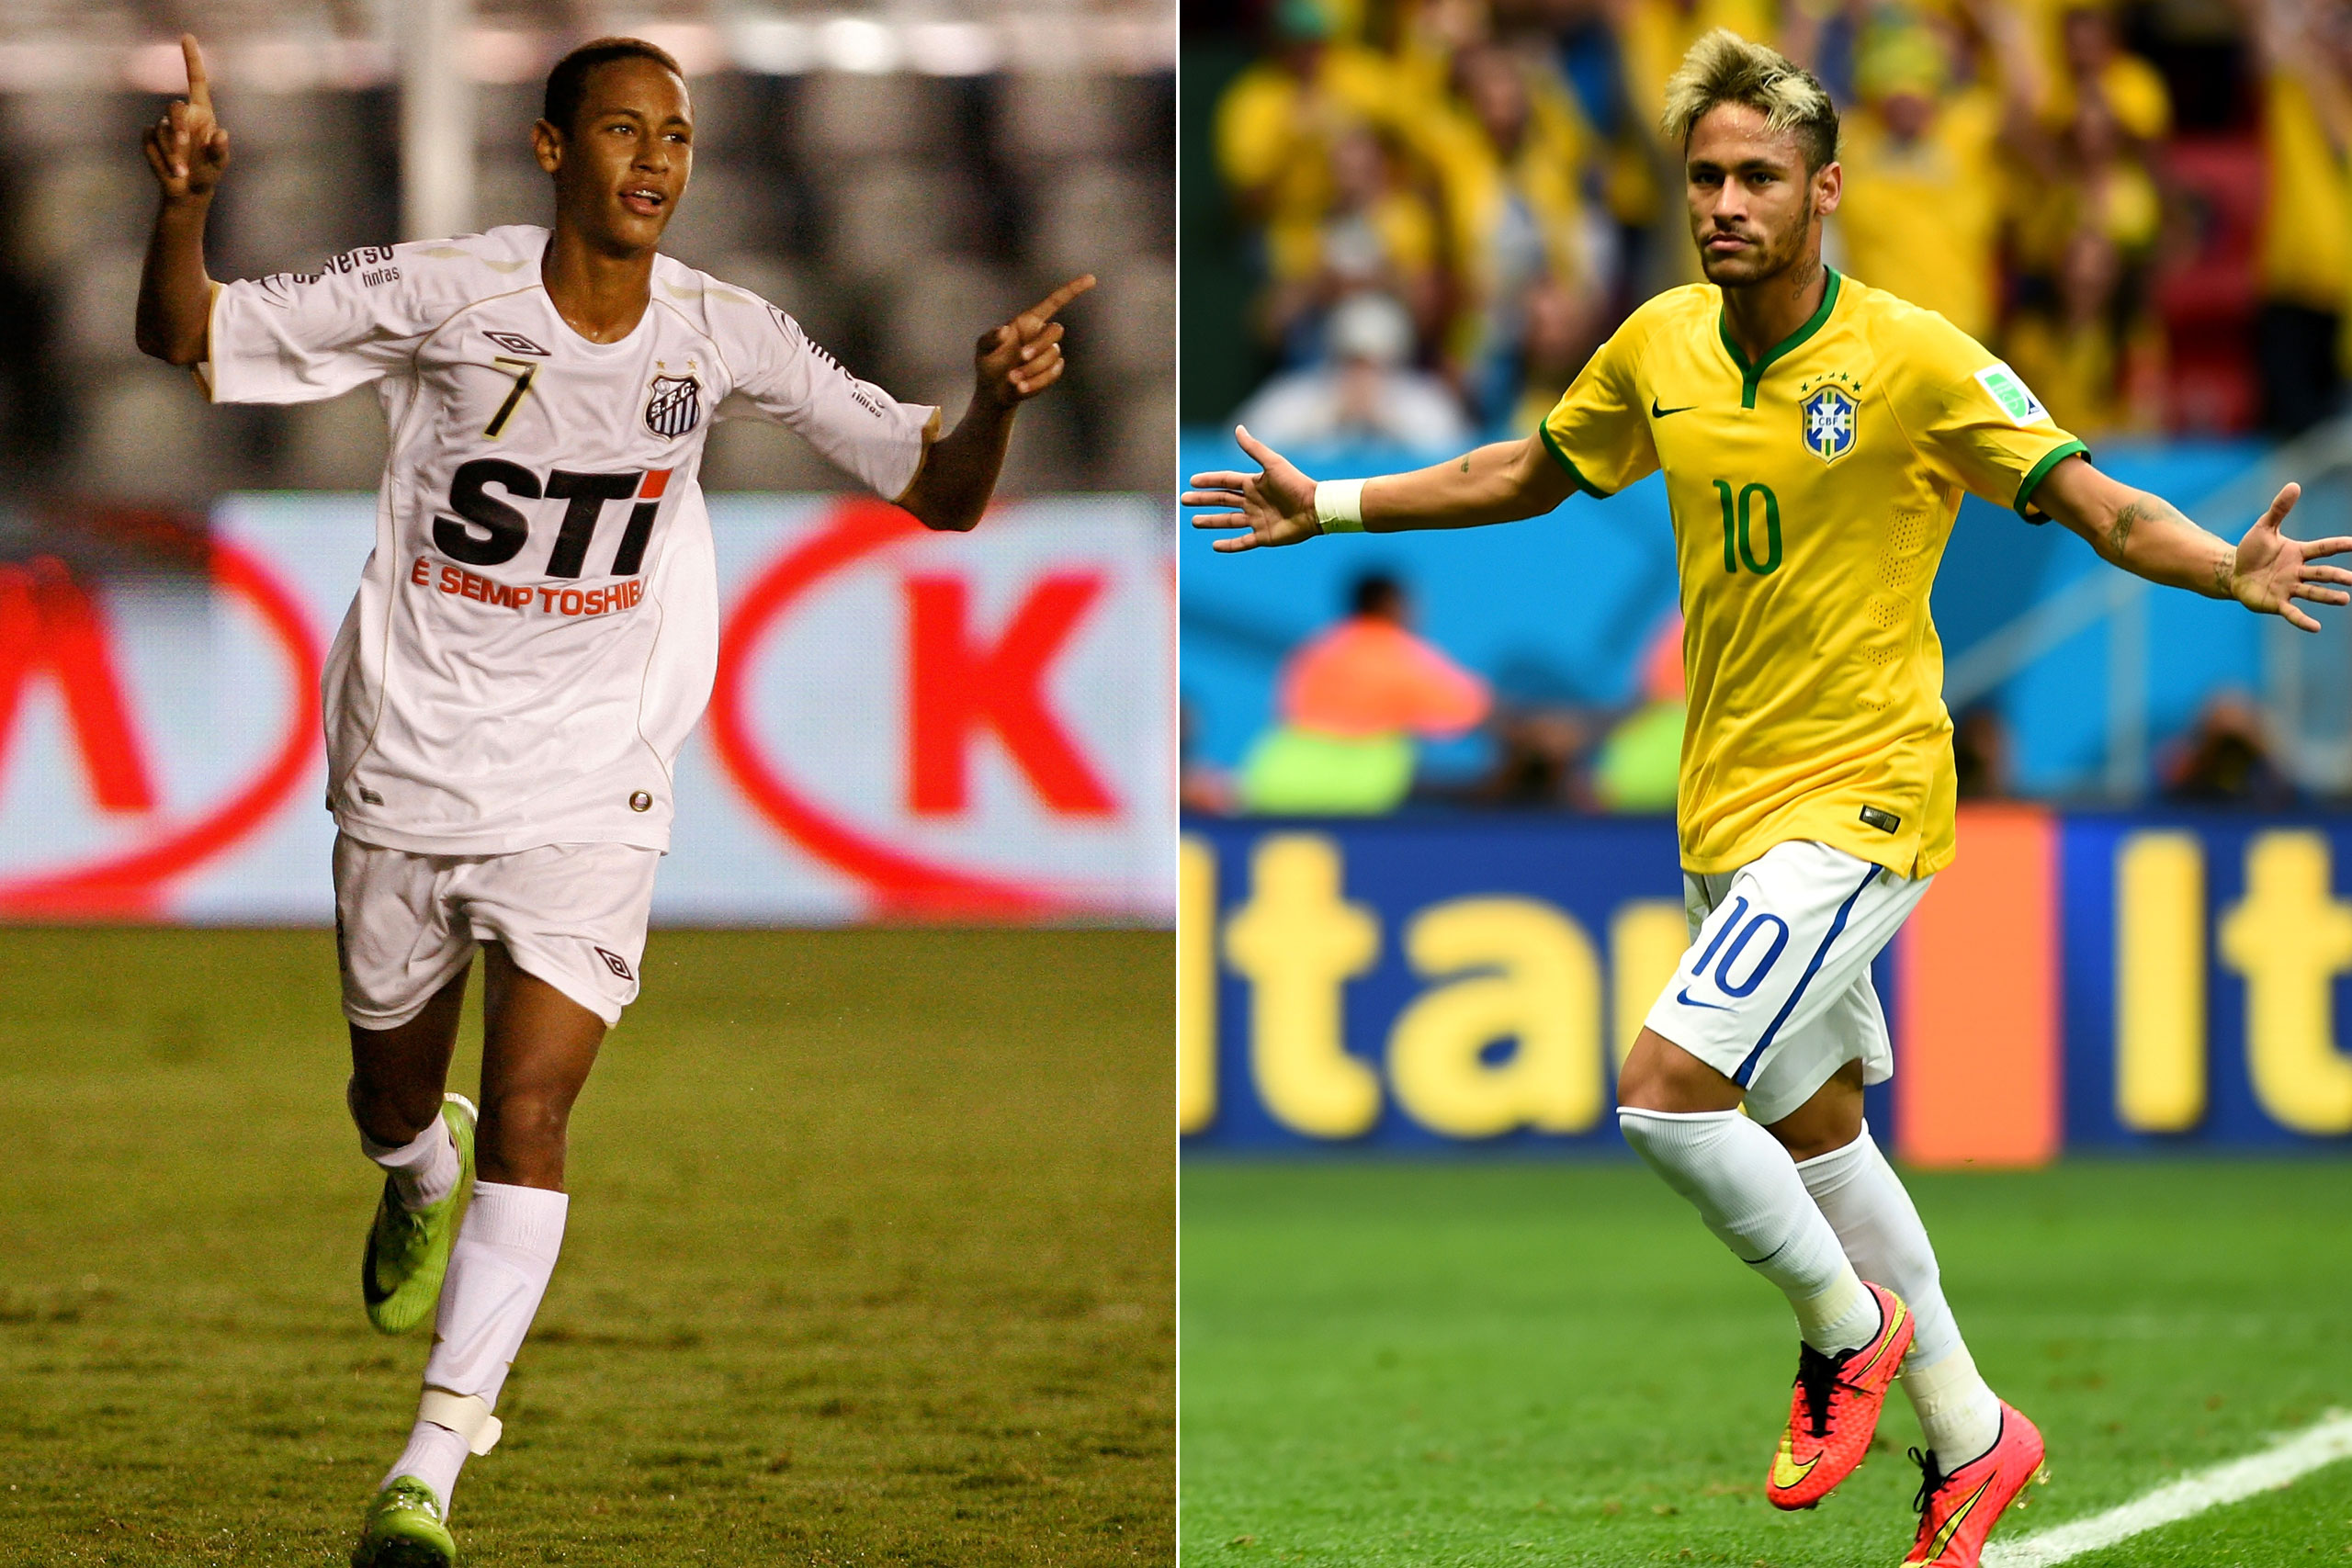 Left: Neymar in 2009; Right: Neymar playing for Brazil at the FIFA World Cup in Brazil, 2014.